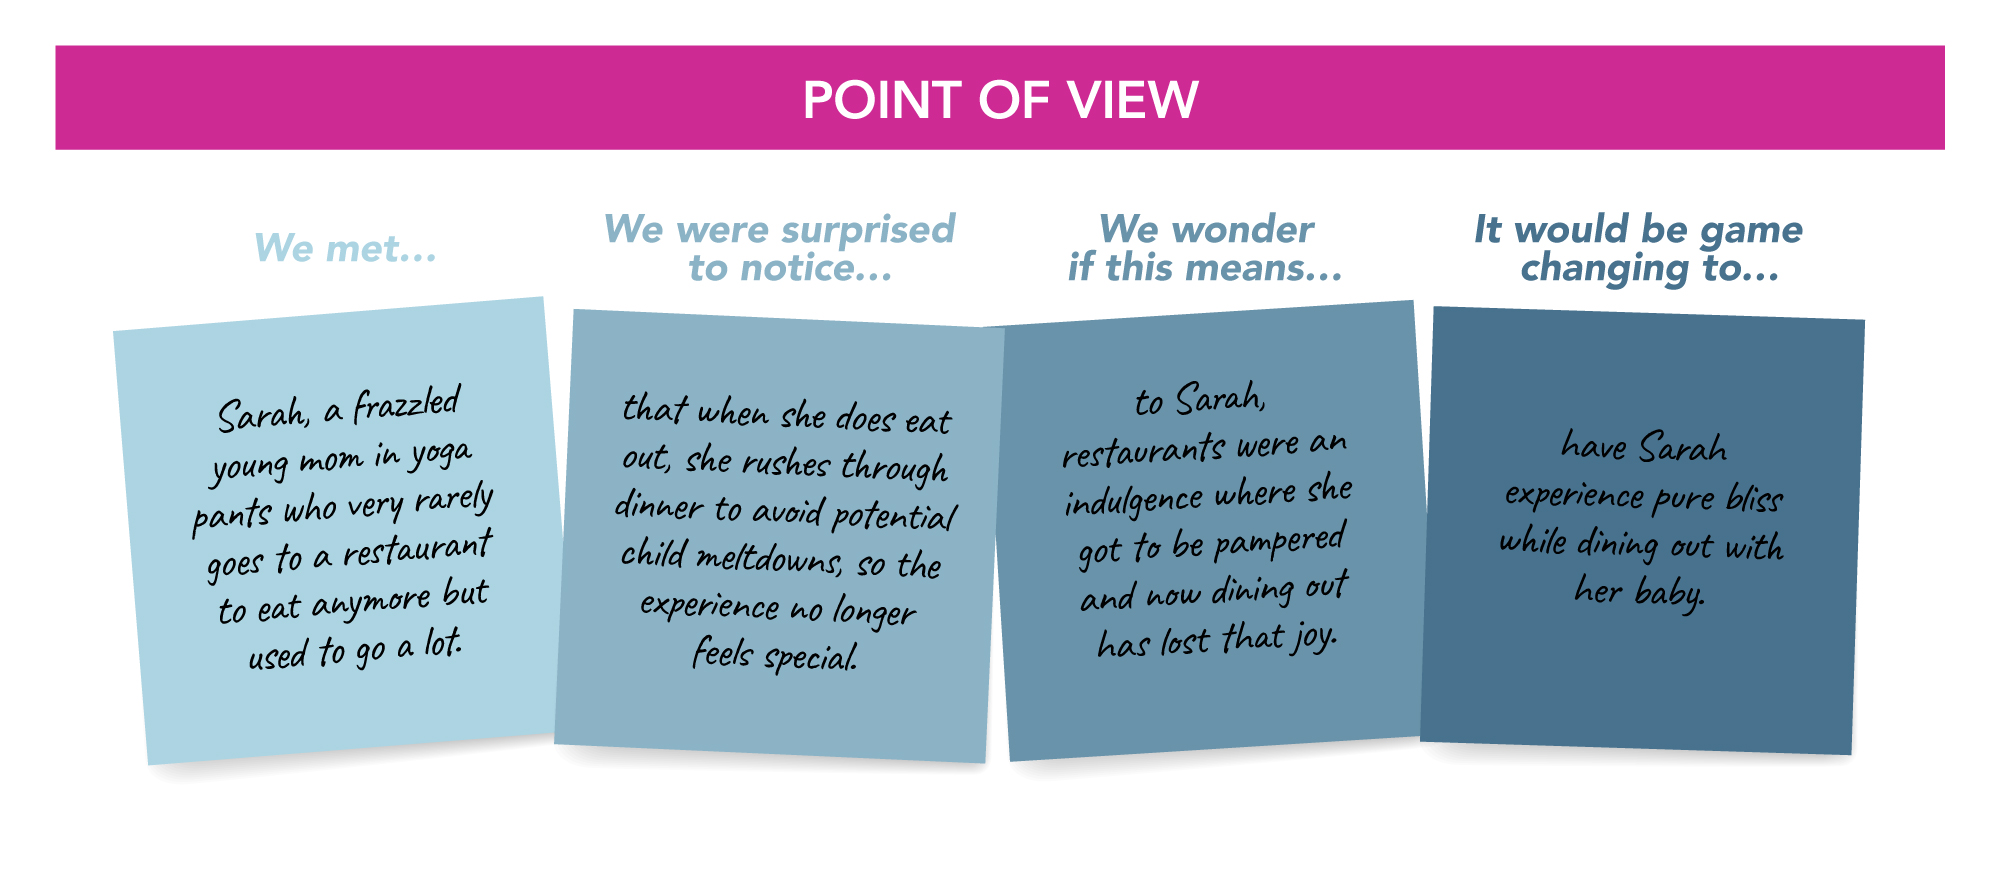 5 Steps to Create a Spectacular Point of View